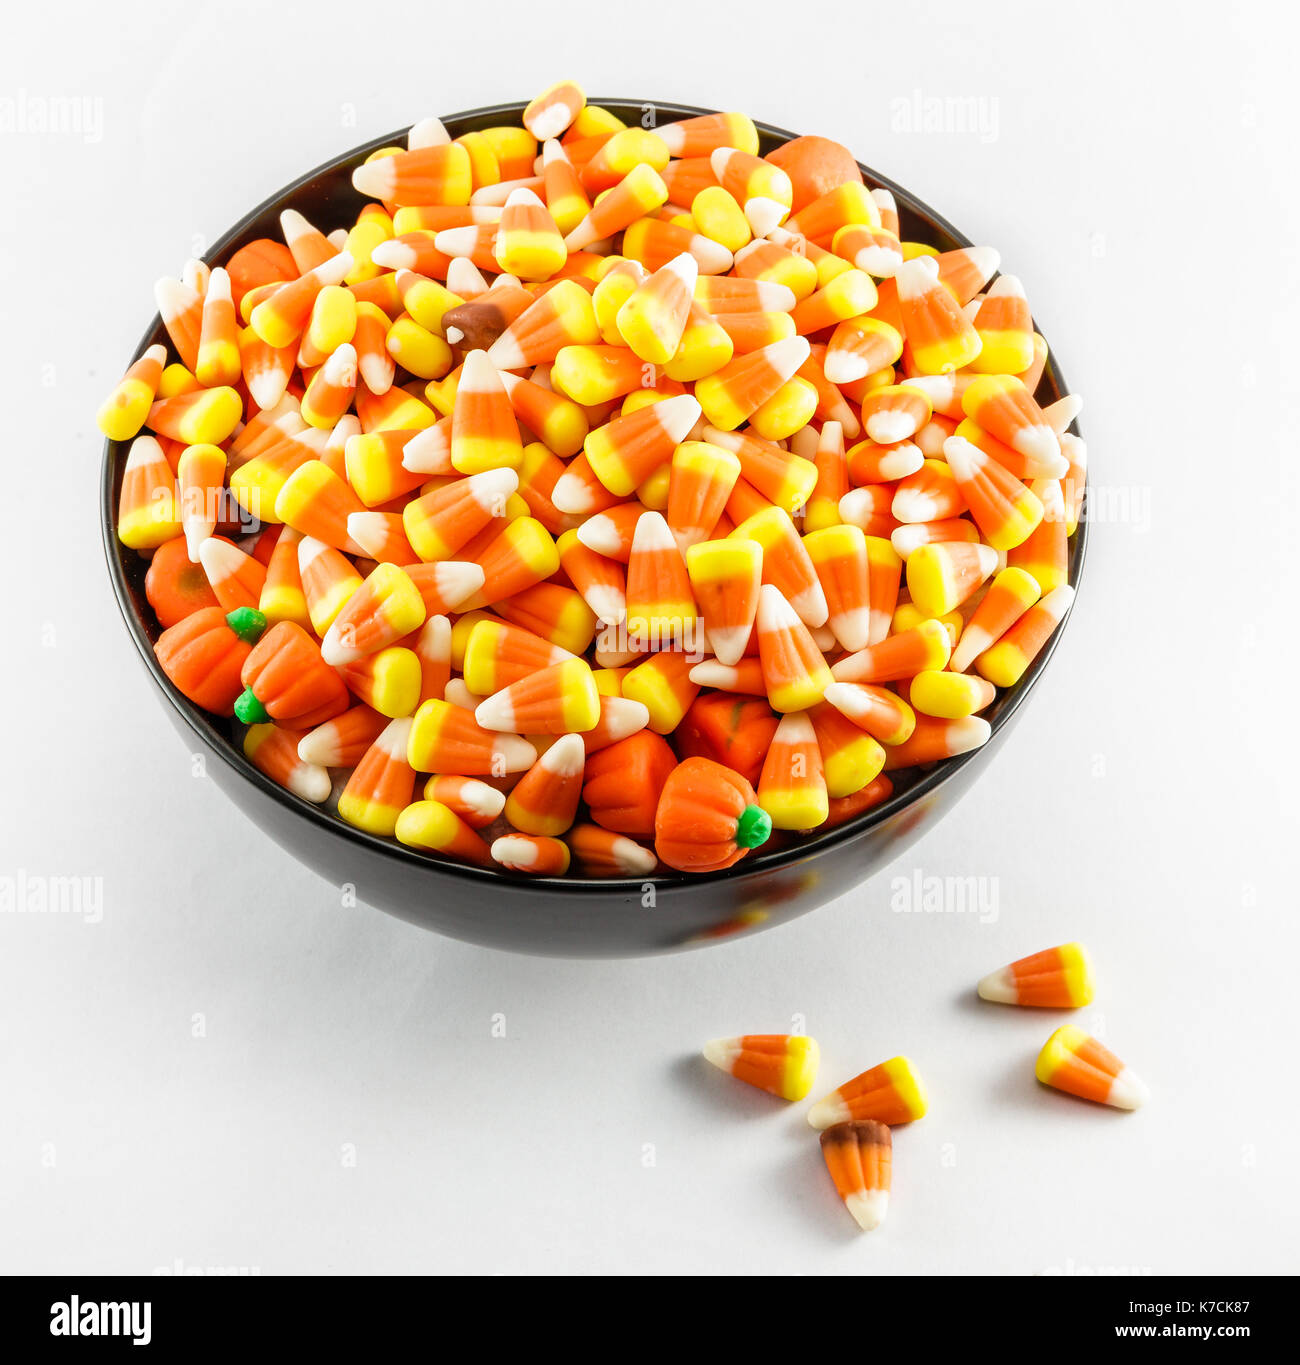 A black bowl over filled with Candy Corn taken on a white background. - Stock Image